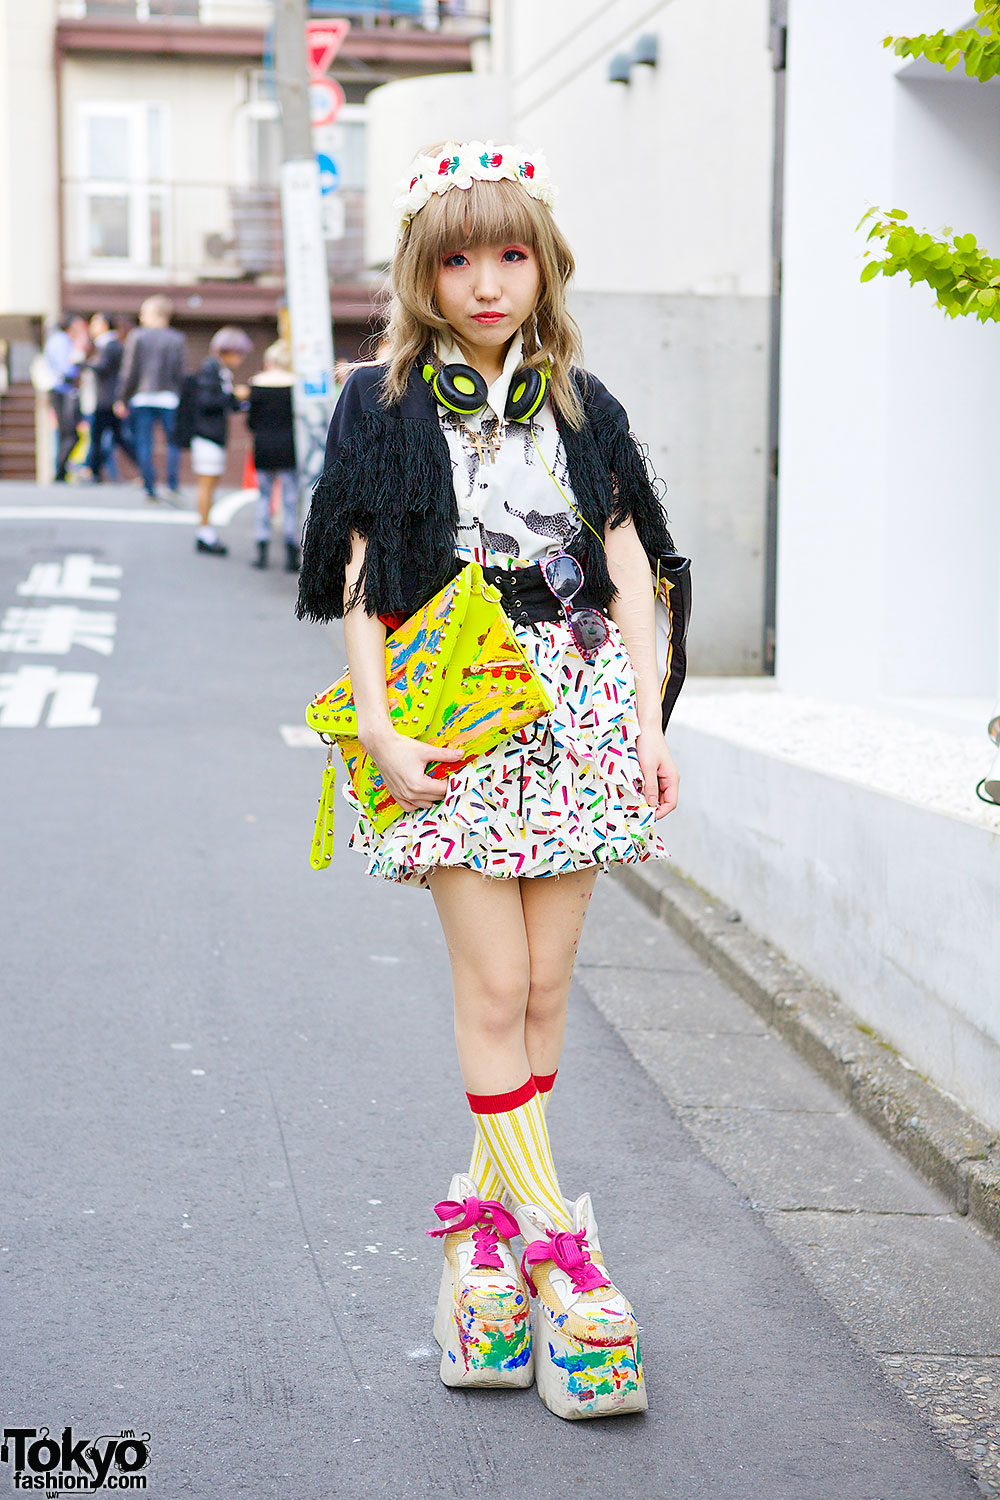 Goocy Top & Skirt in Harajuku